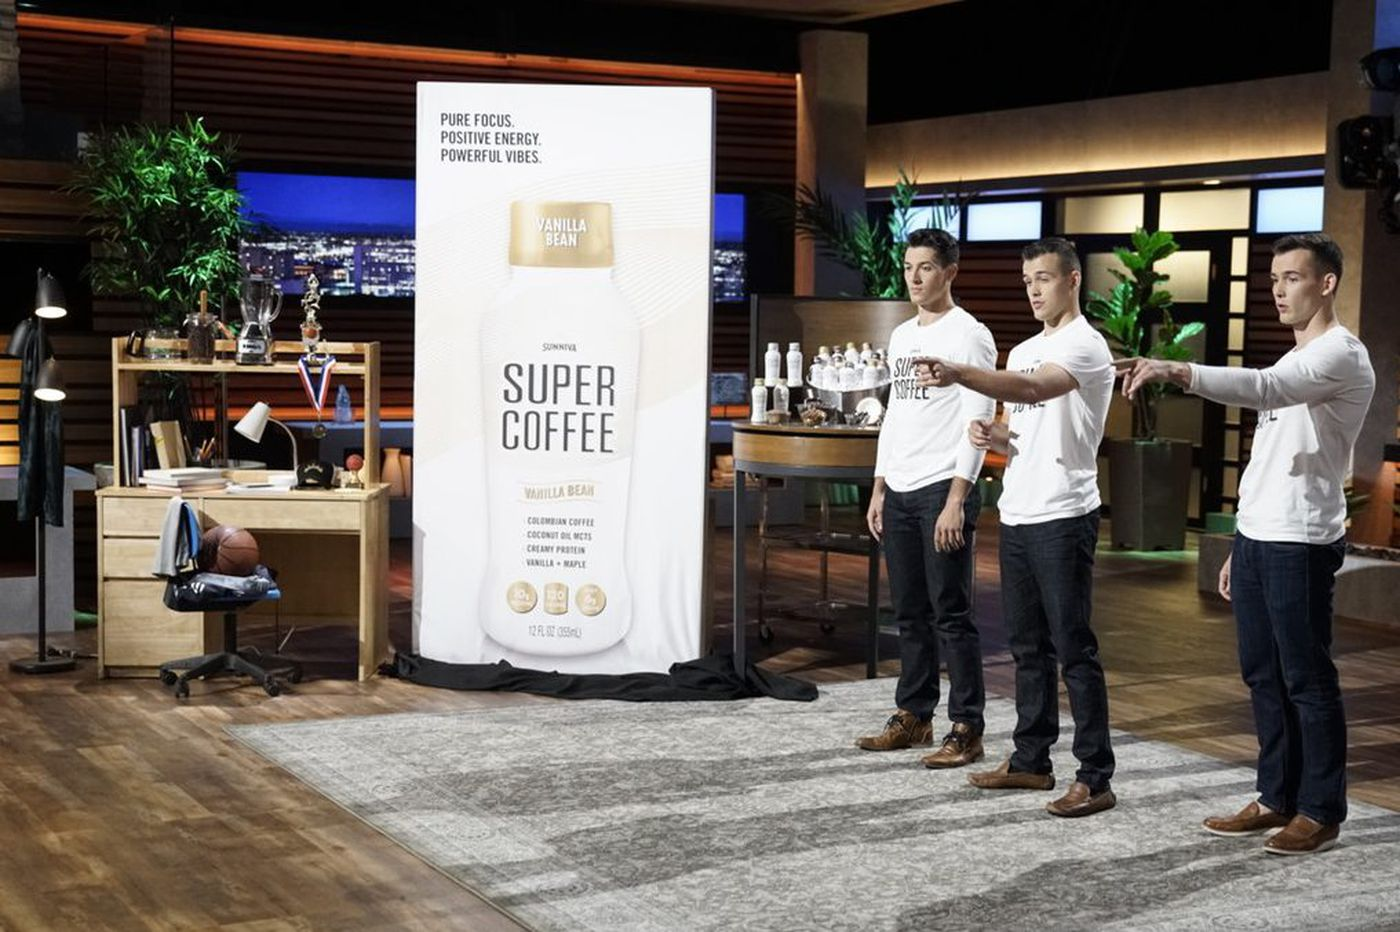 Former Philadelphia University basketball player competes on Shark Tank with Super Coffee product